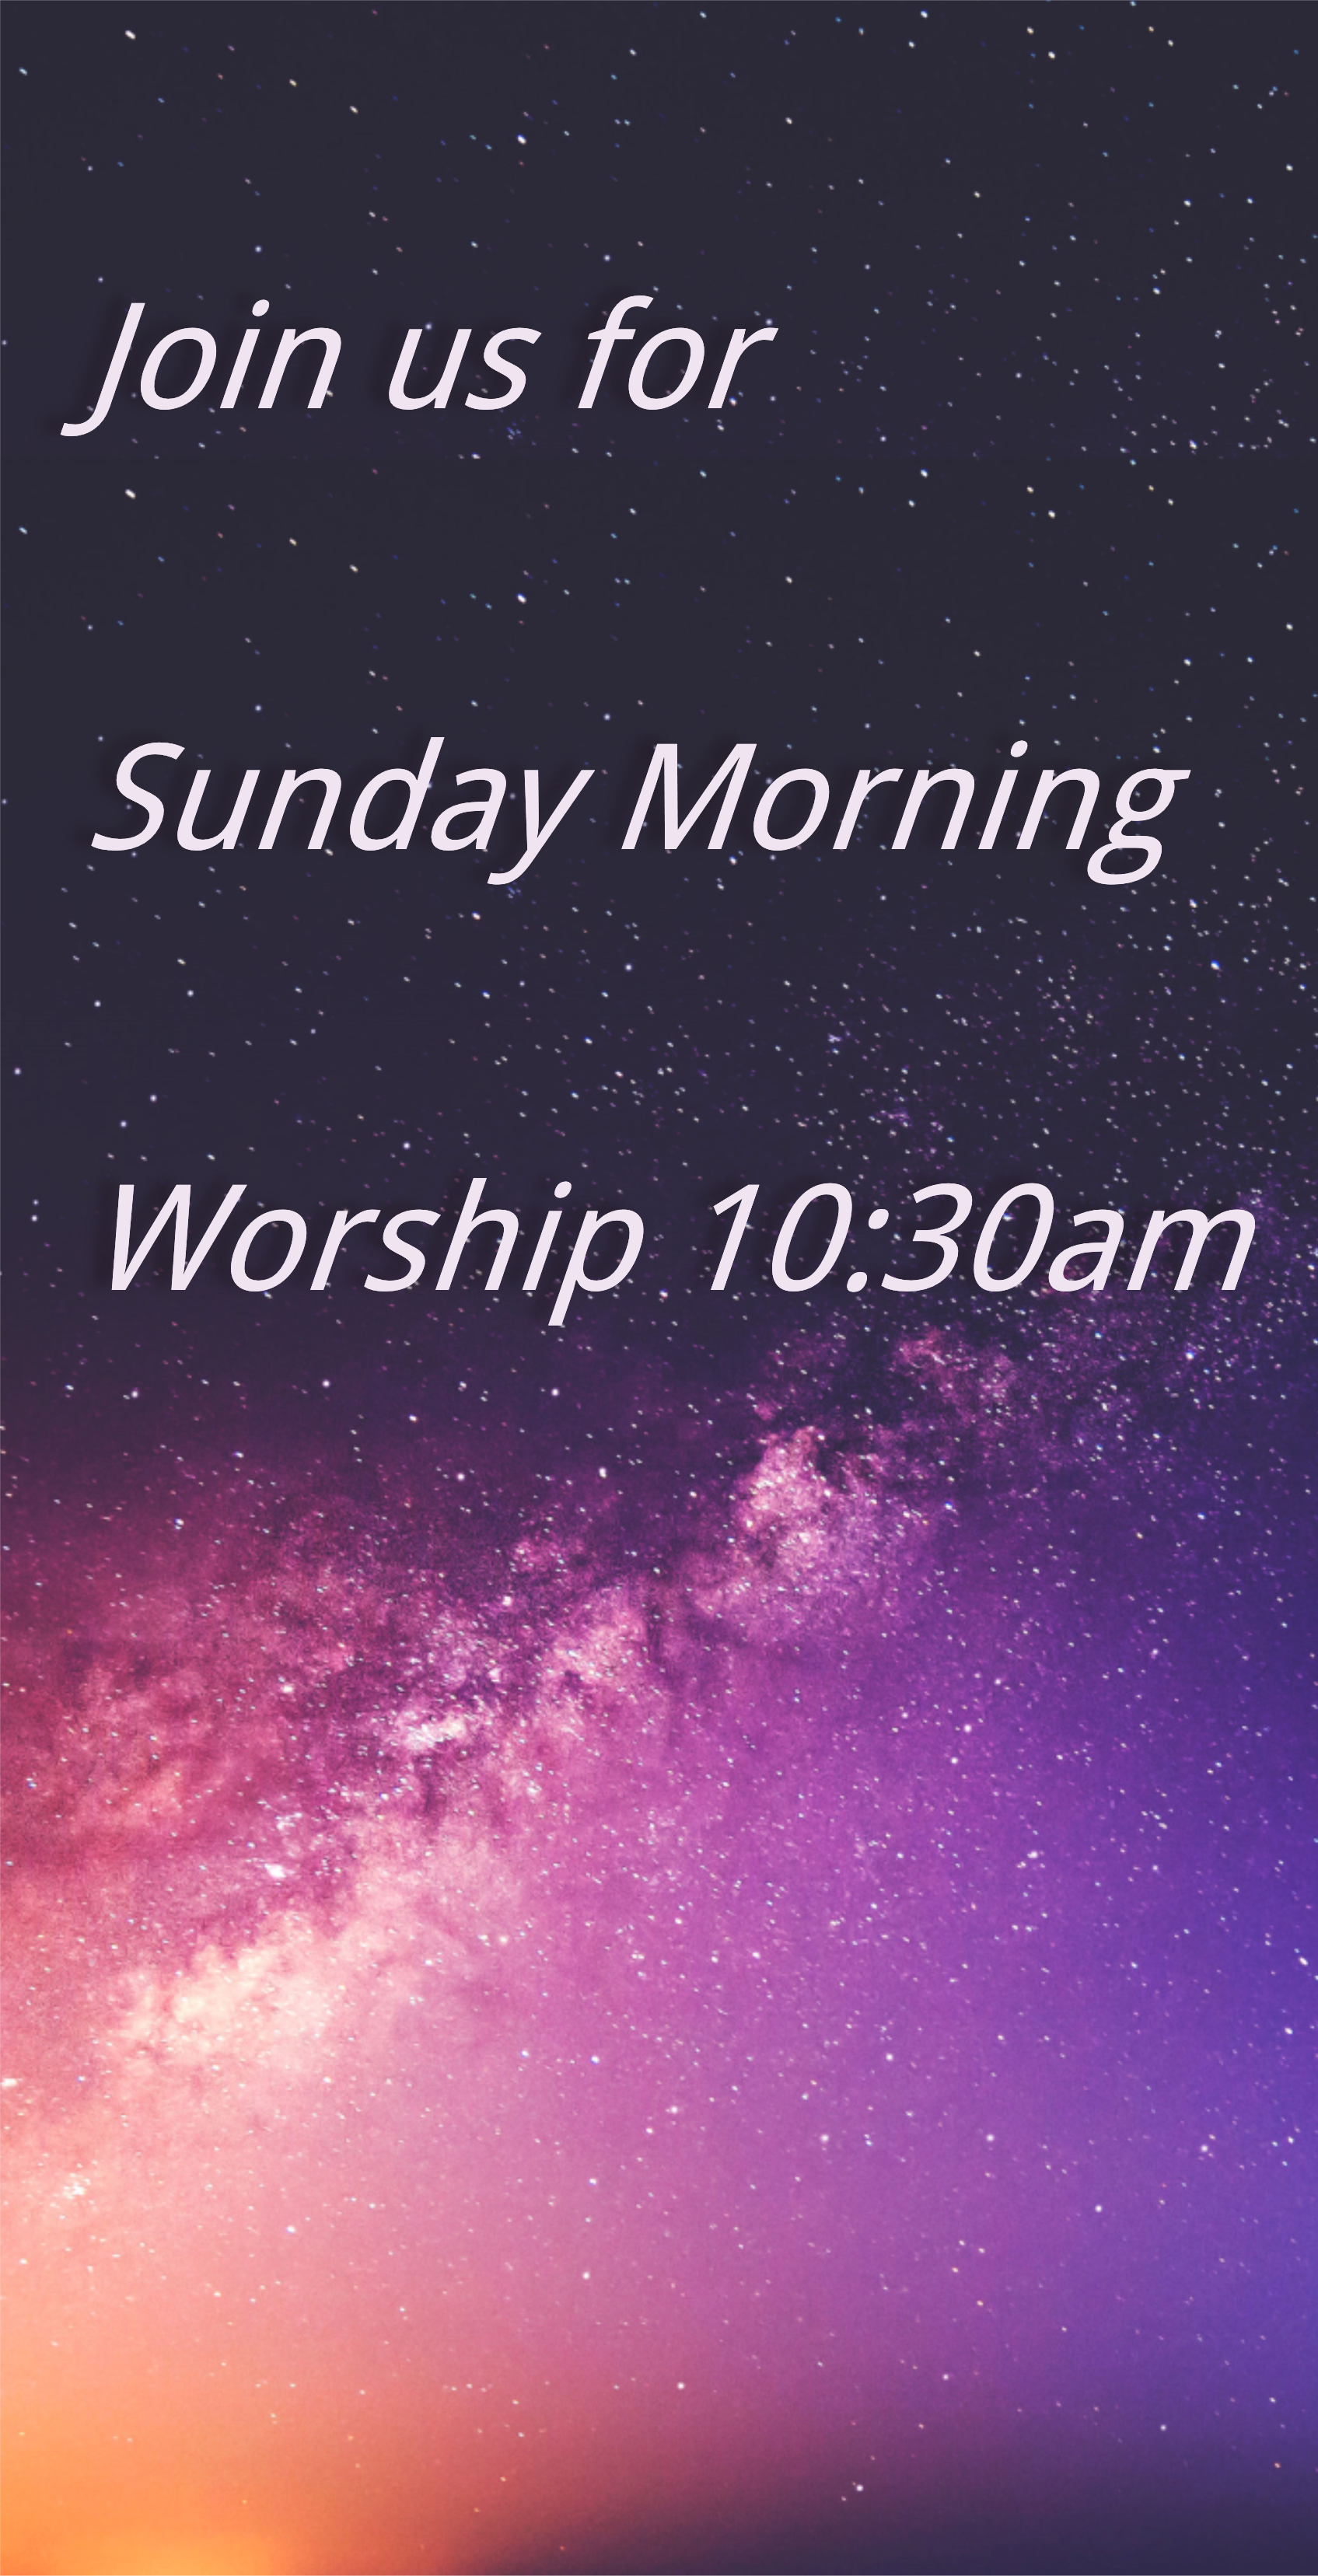 Sunday Morning Worship 10:30am